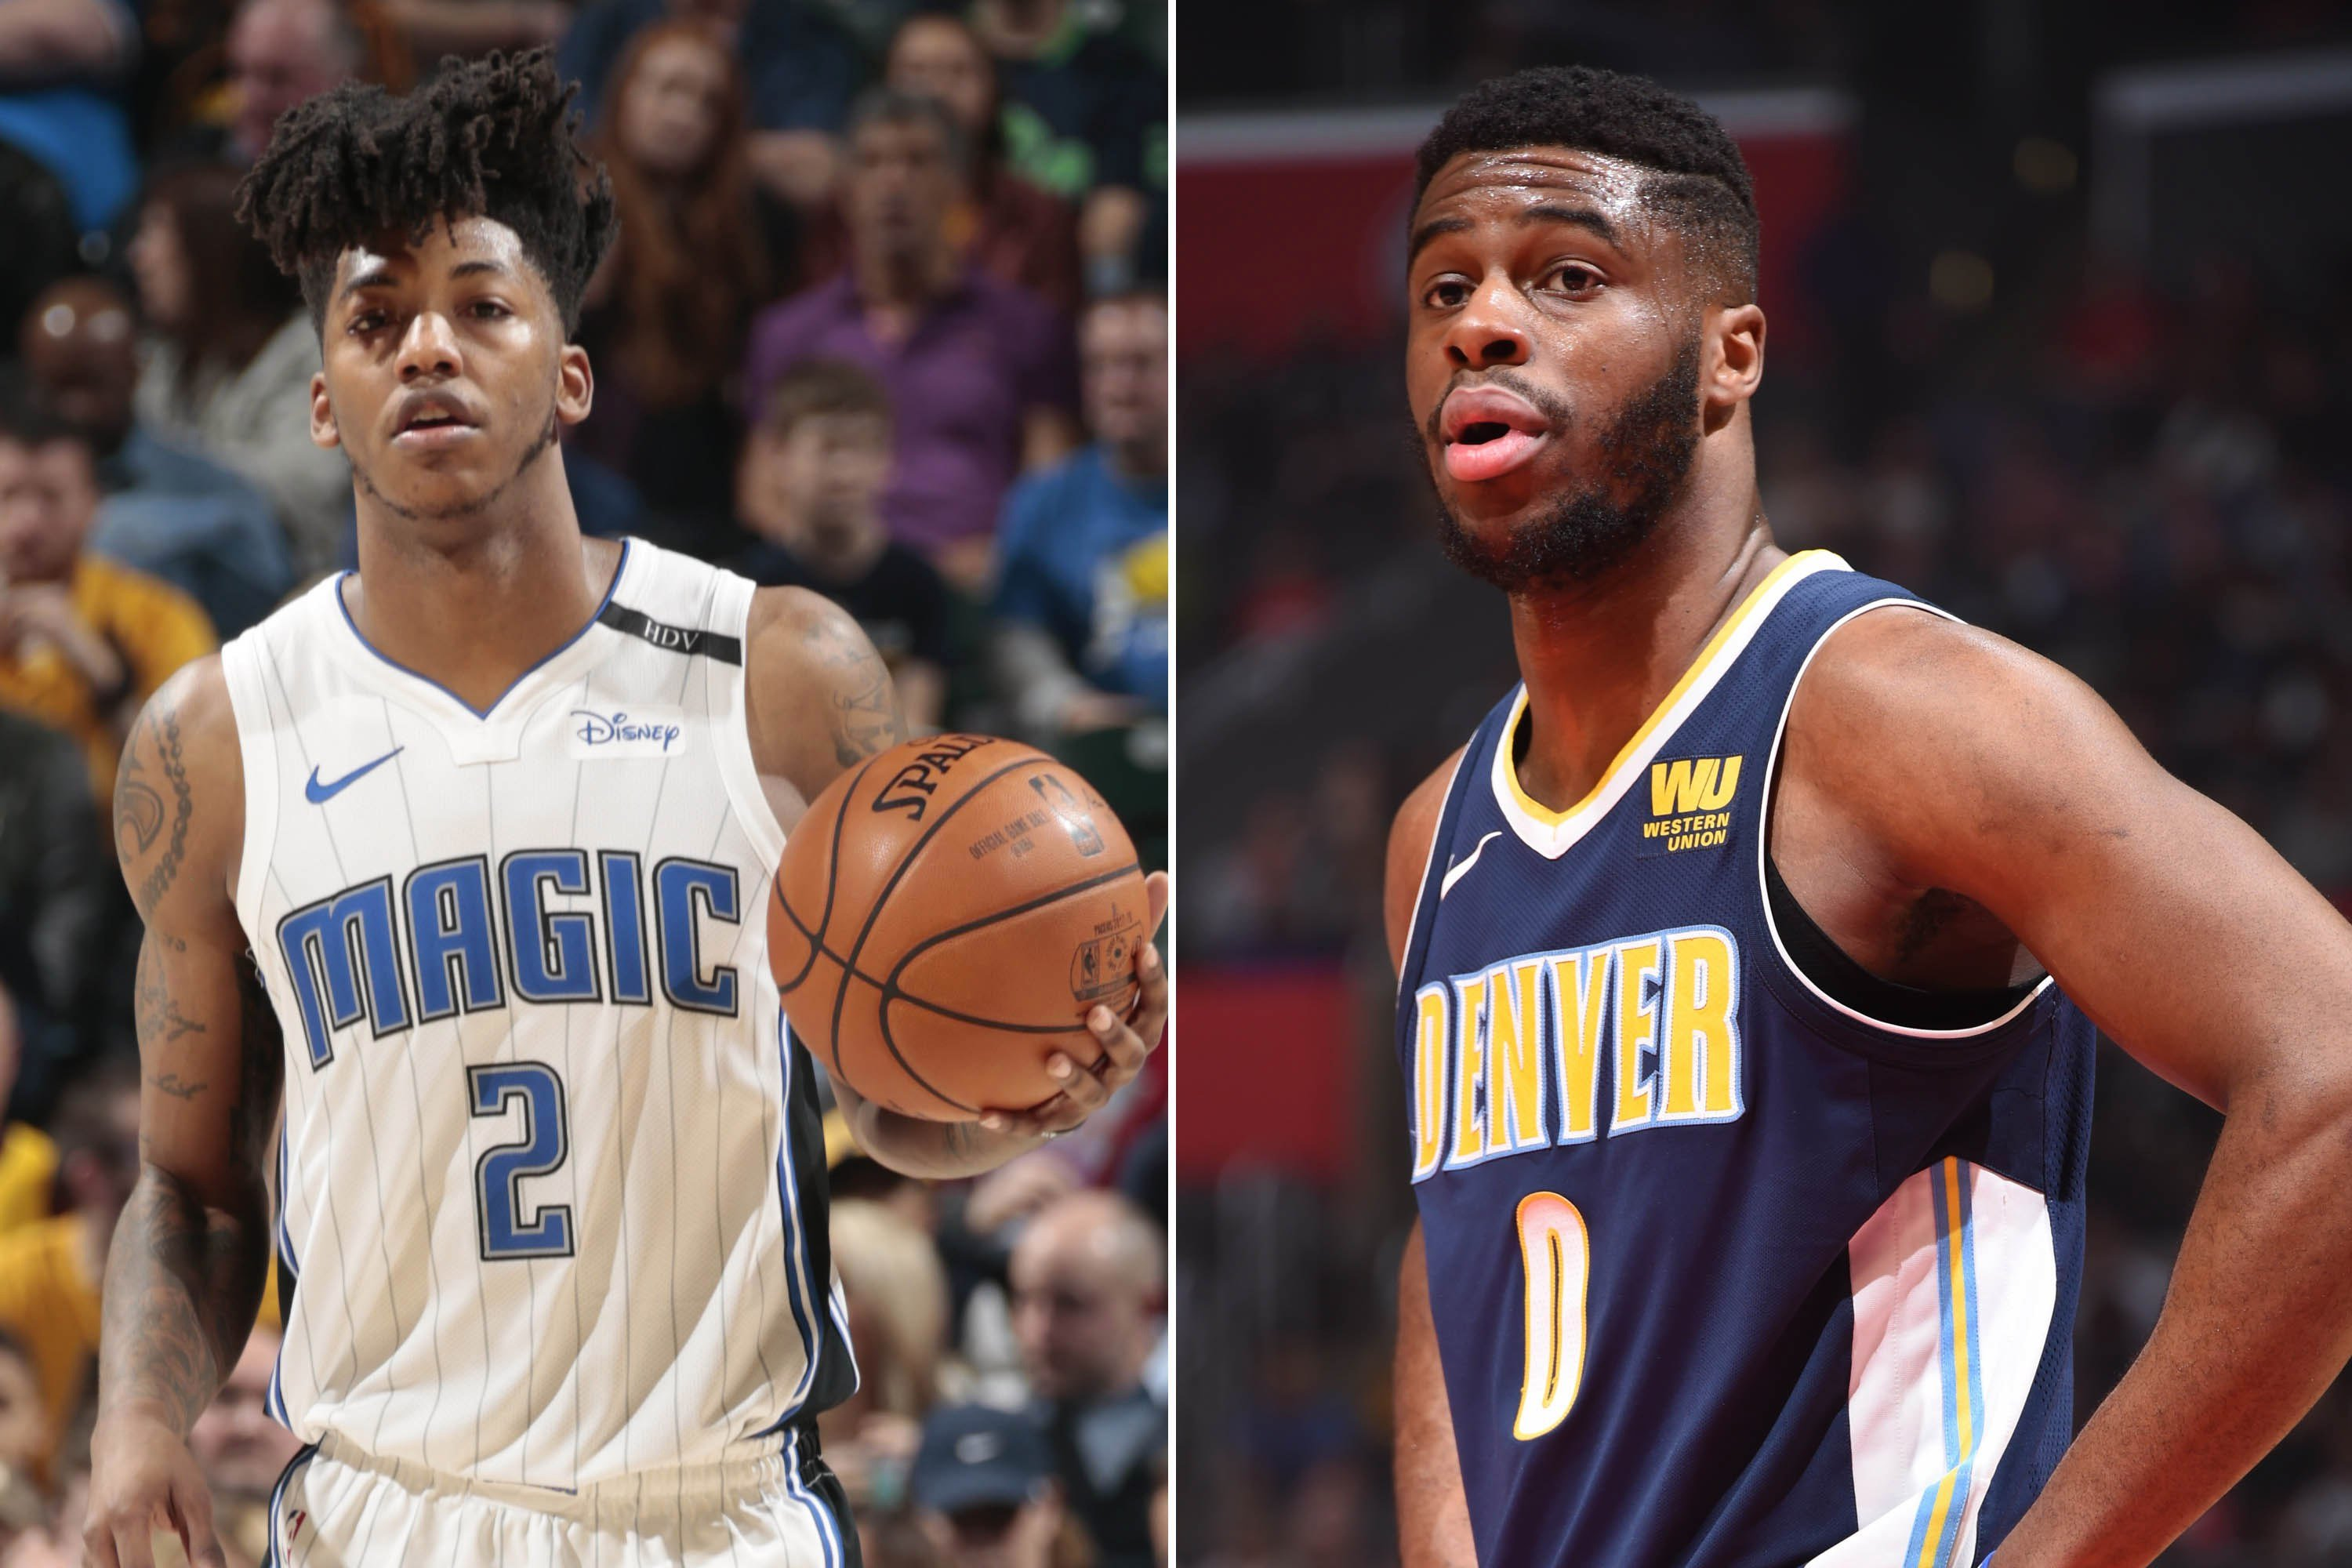 Why Knicks picked Emmanuel Mudiay over Elfrid Payton